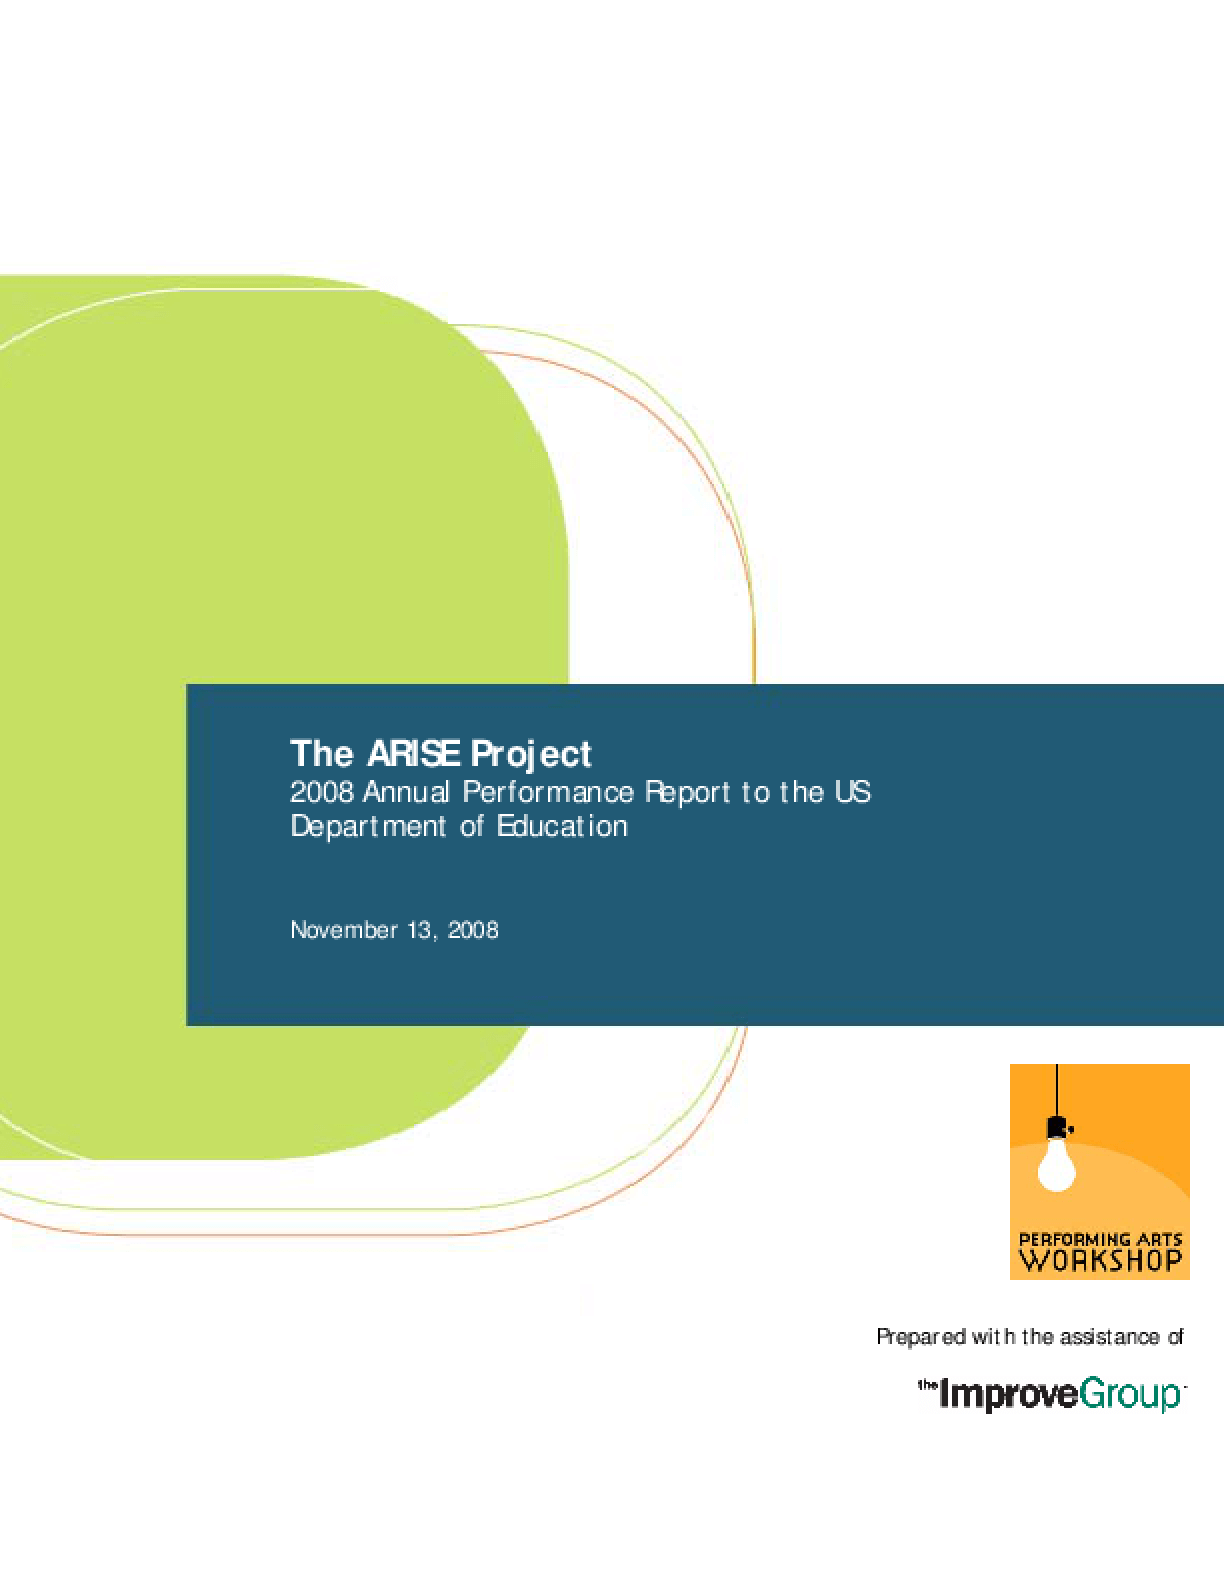 ARISE 2008 Annual Performance Report to the US Department of Education